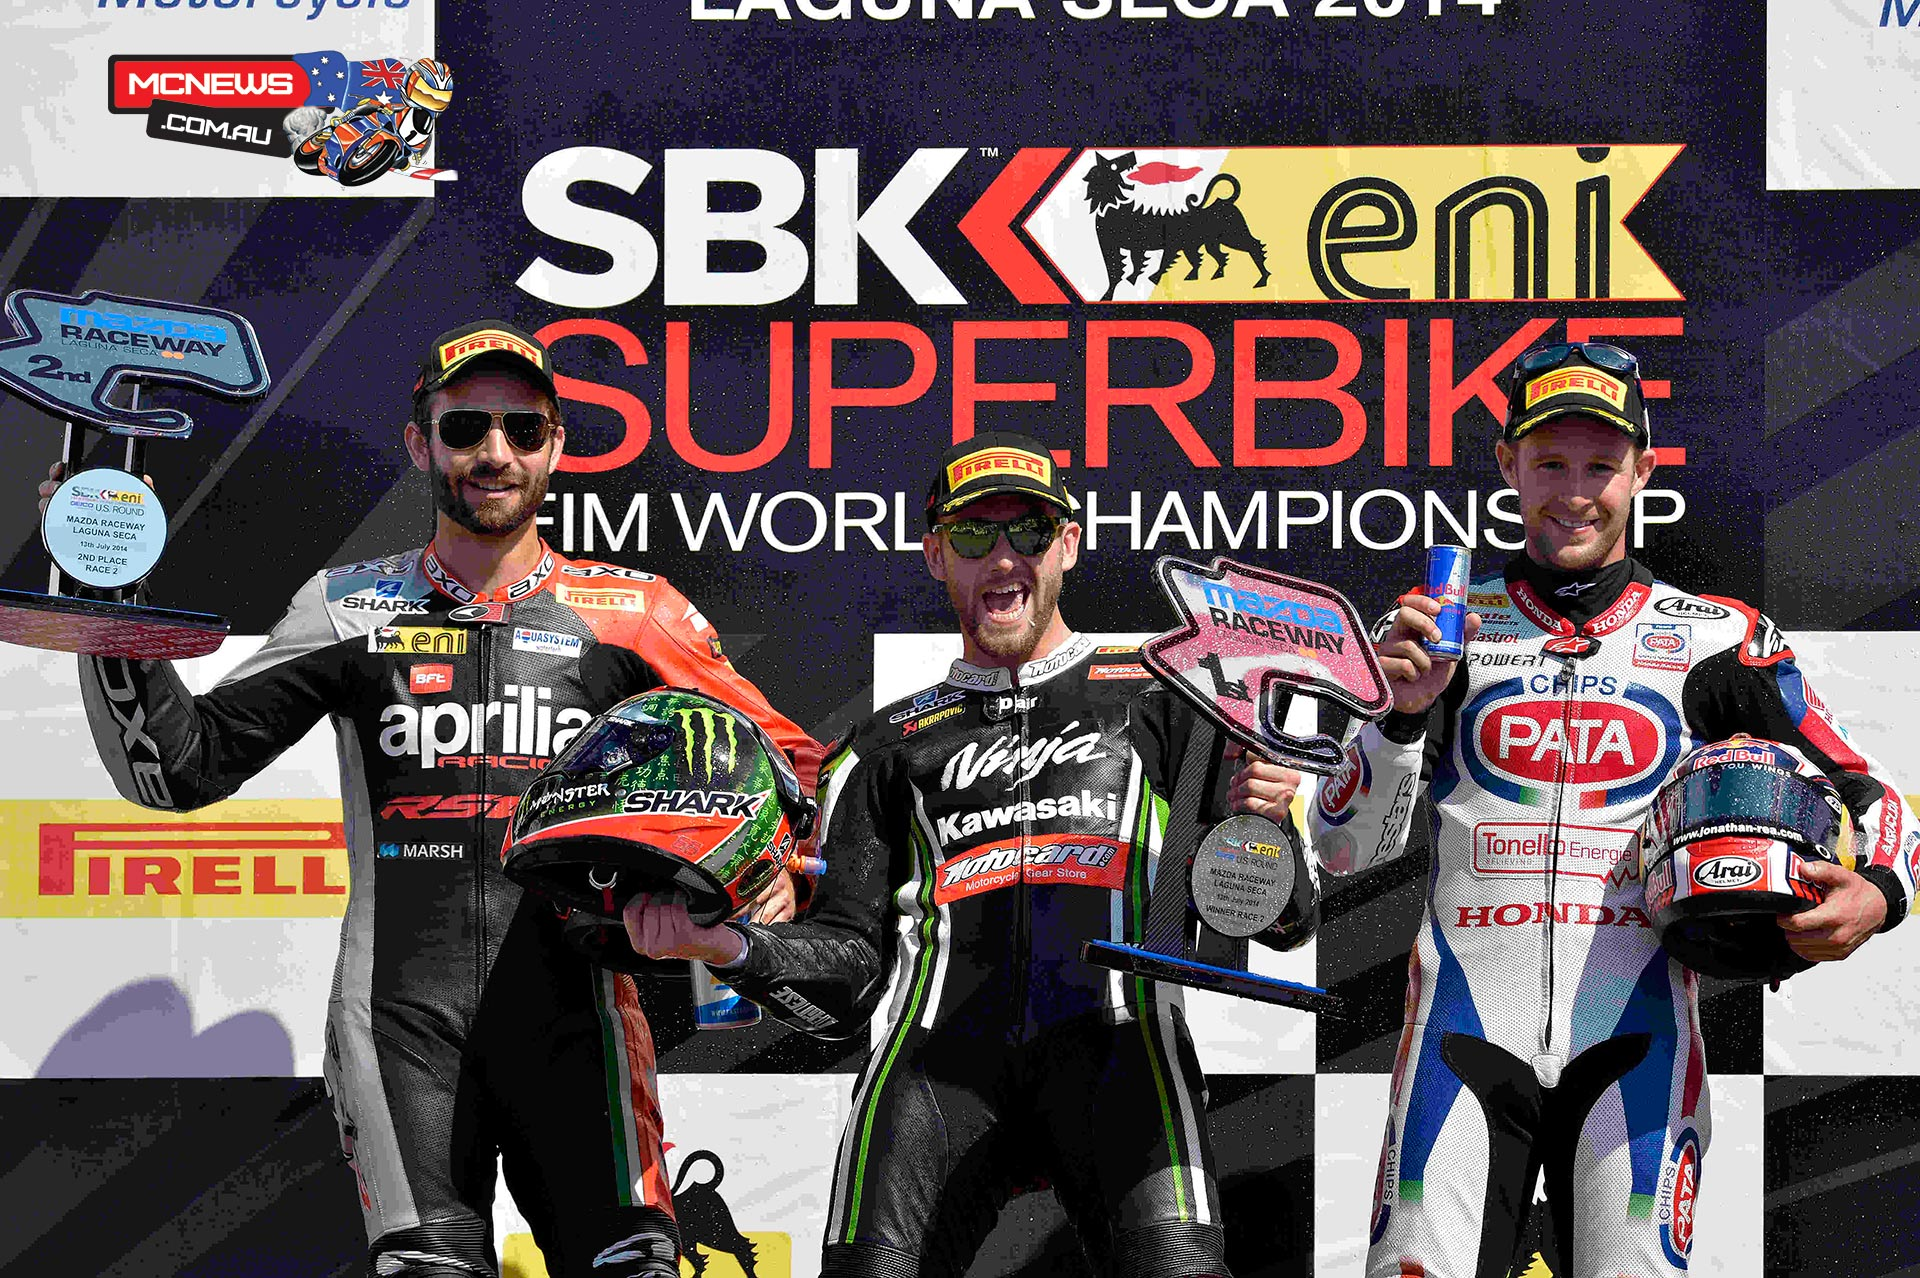 The second WSBK race at Laguna Seca was as hot on track as the air temperature as after two red flags and restarts, Tom Sykes (Kawasaki Racing Team) came out victorious in the 7 lap sprint race that put an end to the ninth round of the 2014 eni FIM Superbike World Championship, which saw a total 49,408 attendants during the three days. Thanks to his 22nd career win, the reigning champion added one tiny point to his championship lead over Sylvain Guintoli (Aprilia Racing Team), second at the flag and now 44 points behind the reigning champion.